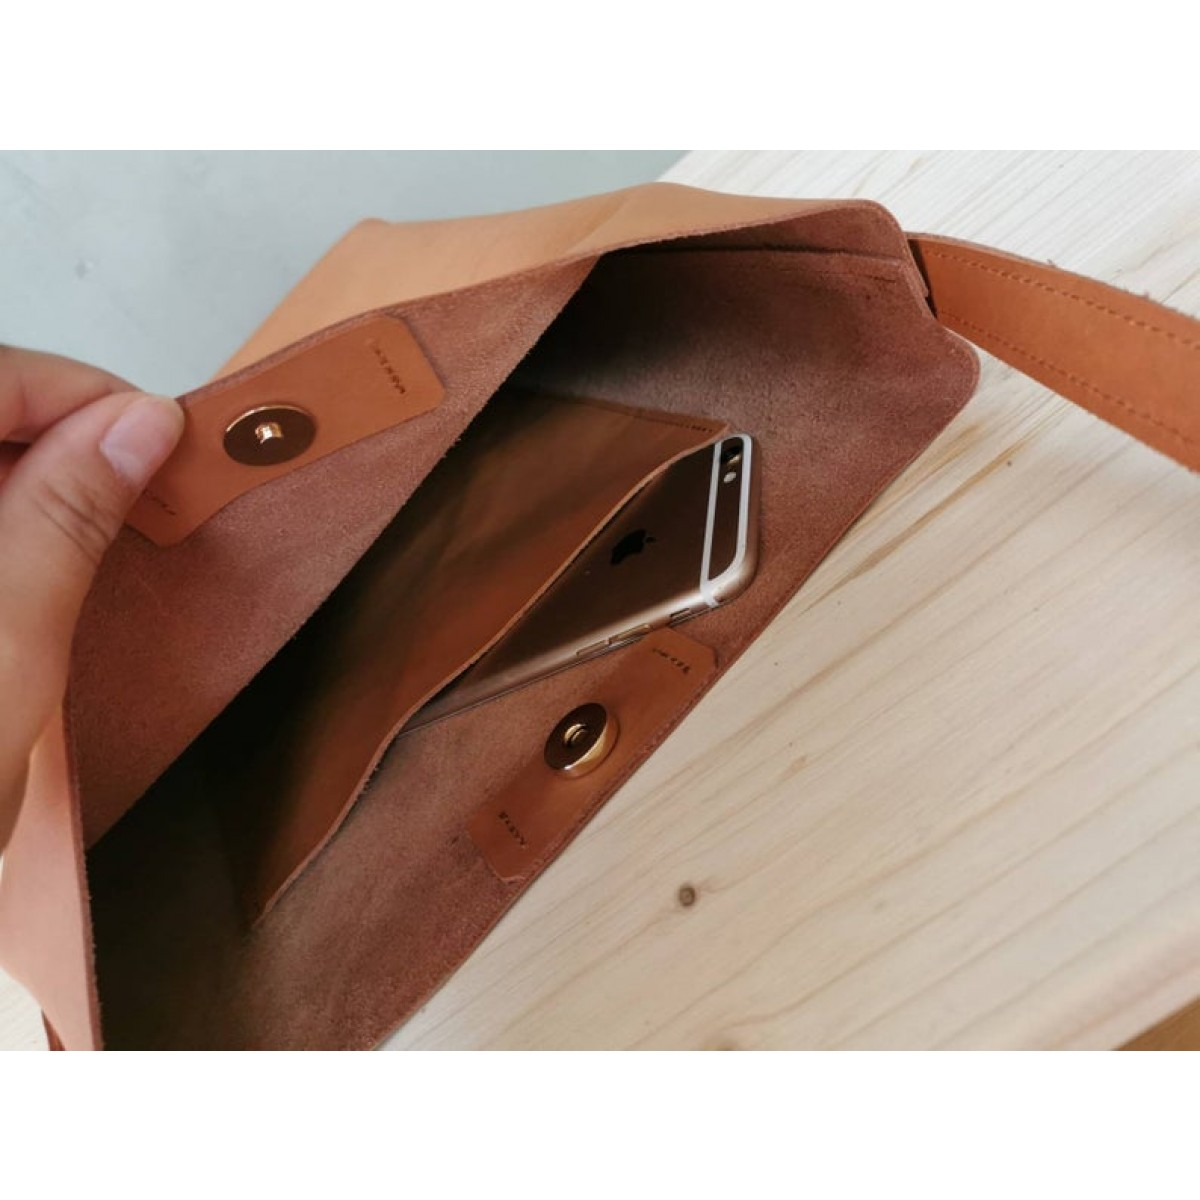 Camel Braune Leder Beuteltasche // leather Bucket Bag // Tote Bag // Boho Bag // Ledershopper // Crossbody Bag